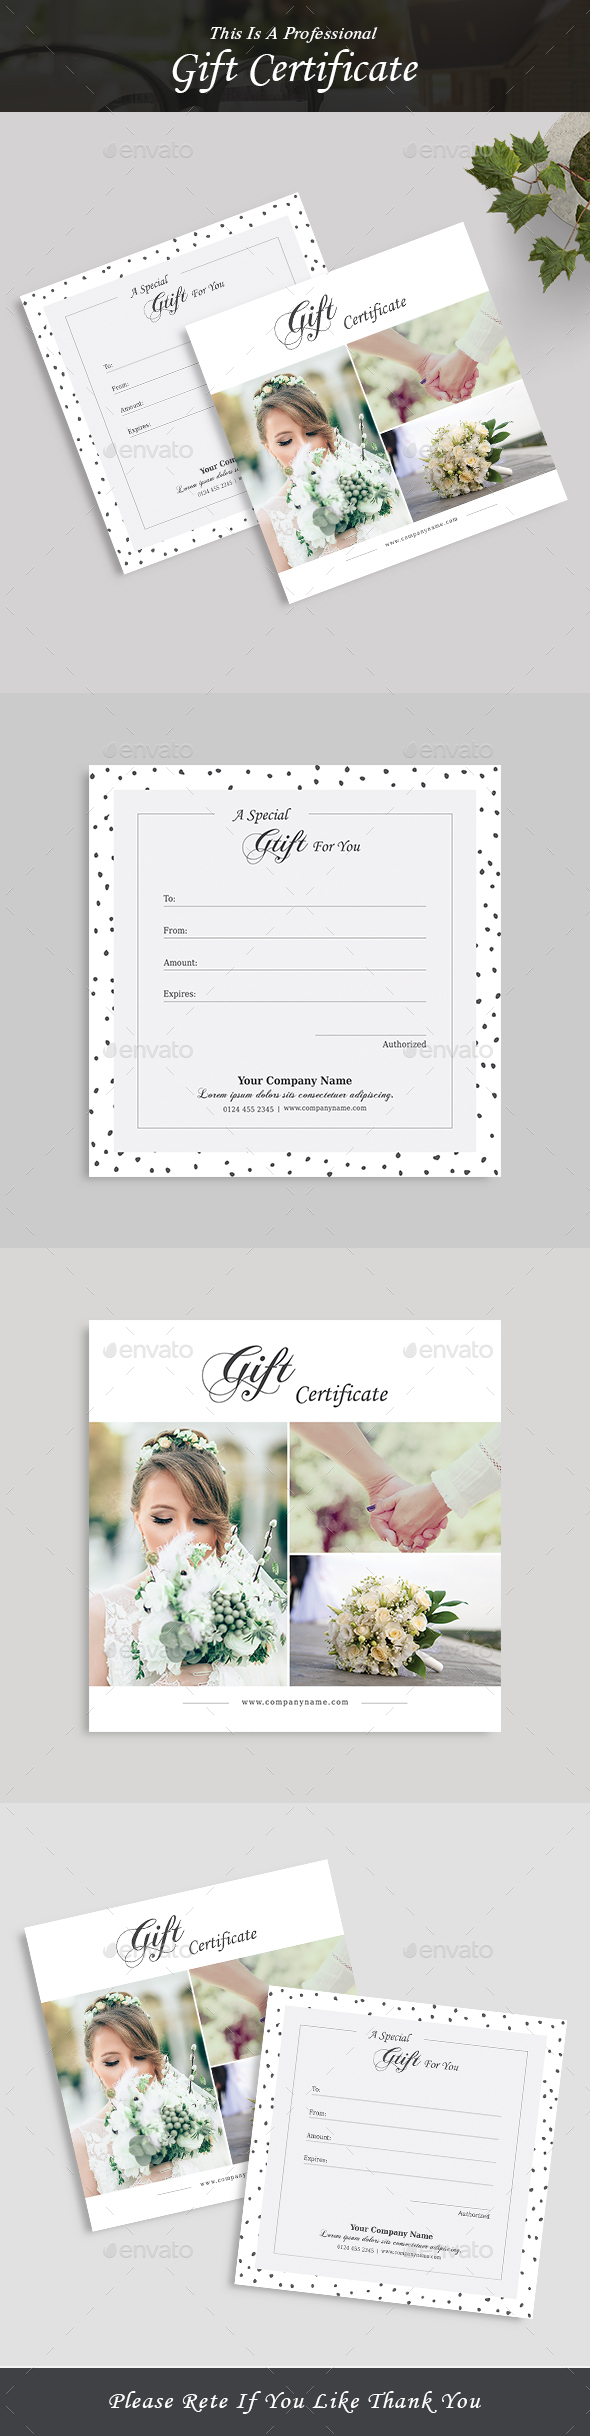 Gift Certificate - Loyalty Cards Cards & Invites